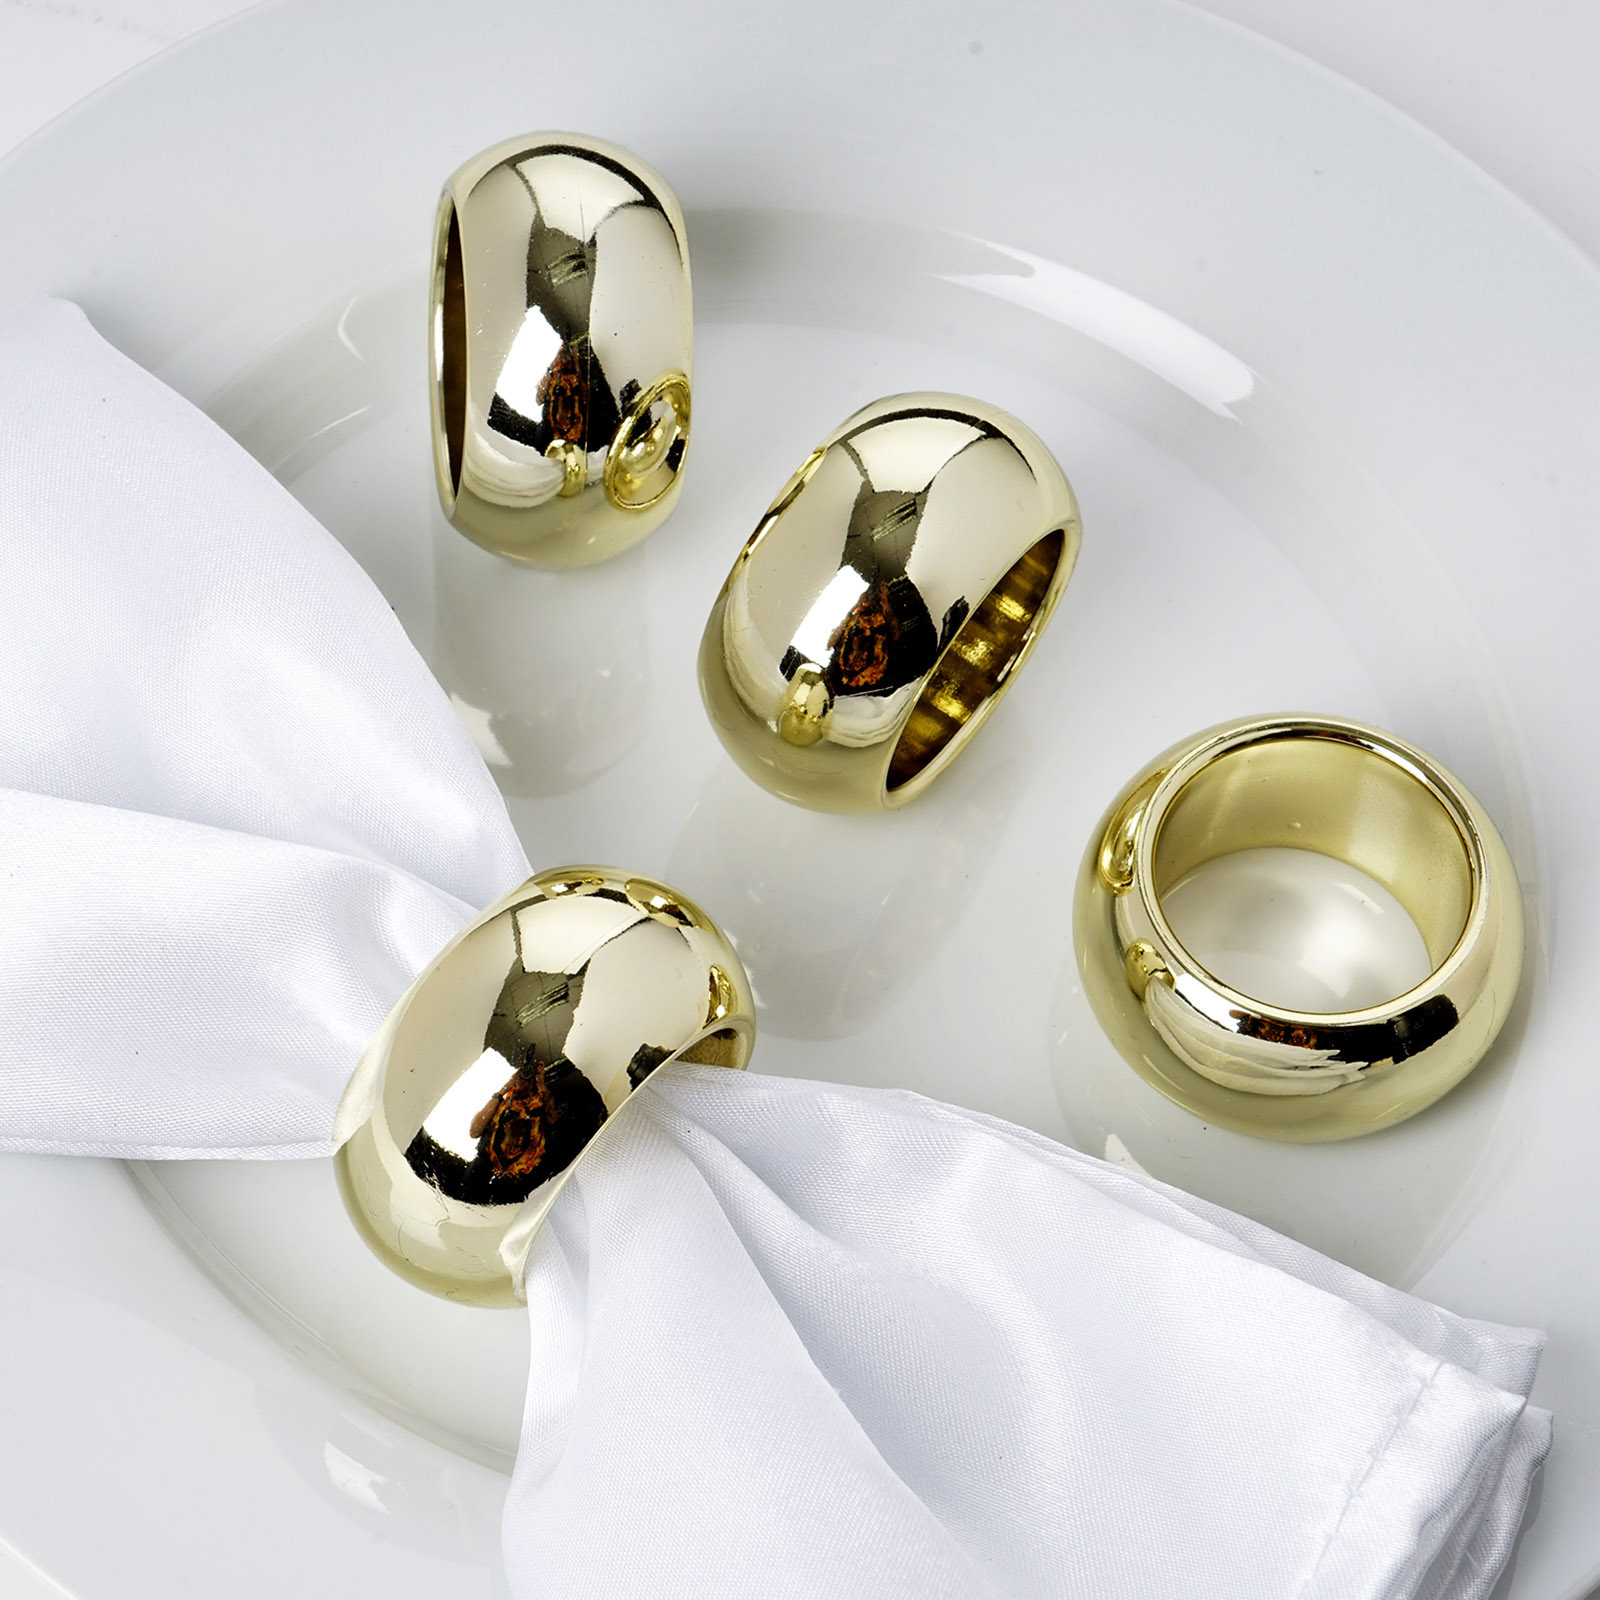 12 Pcs Gold Napkin Rings Wedding Catering Party Banquet Dinner Decorations Sale Ebay